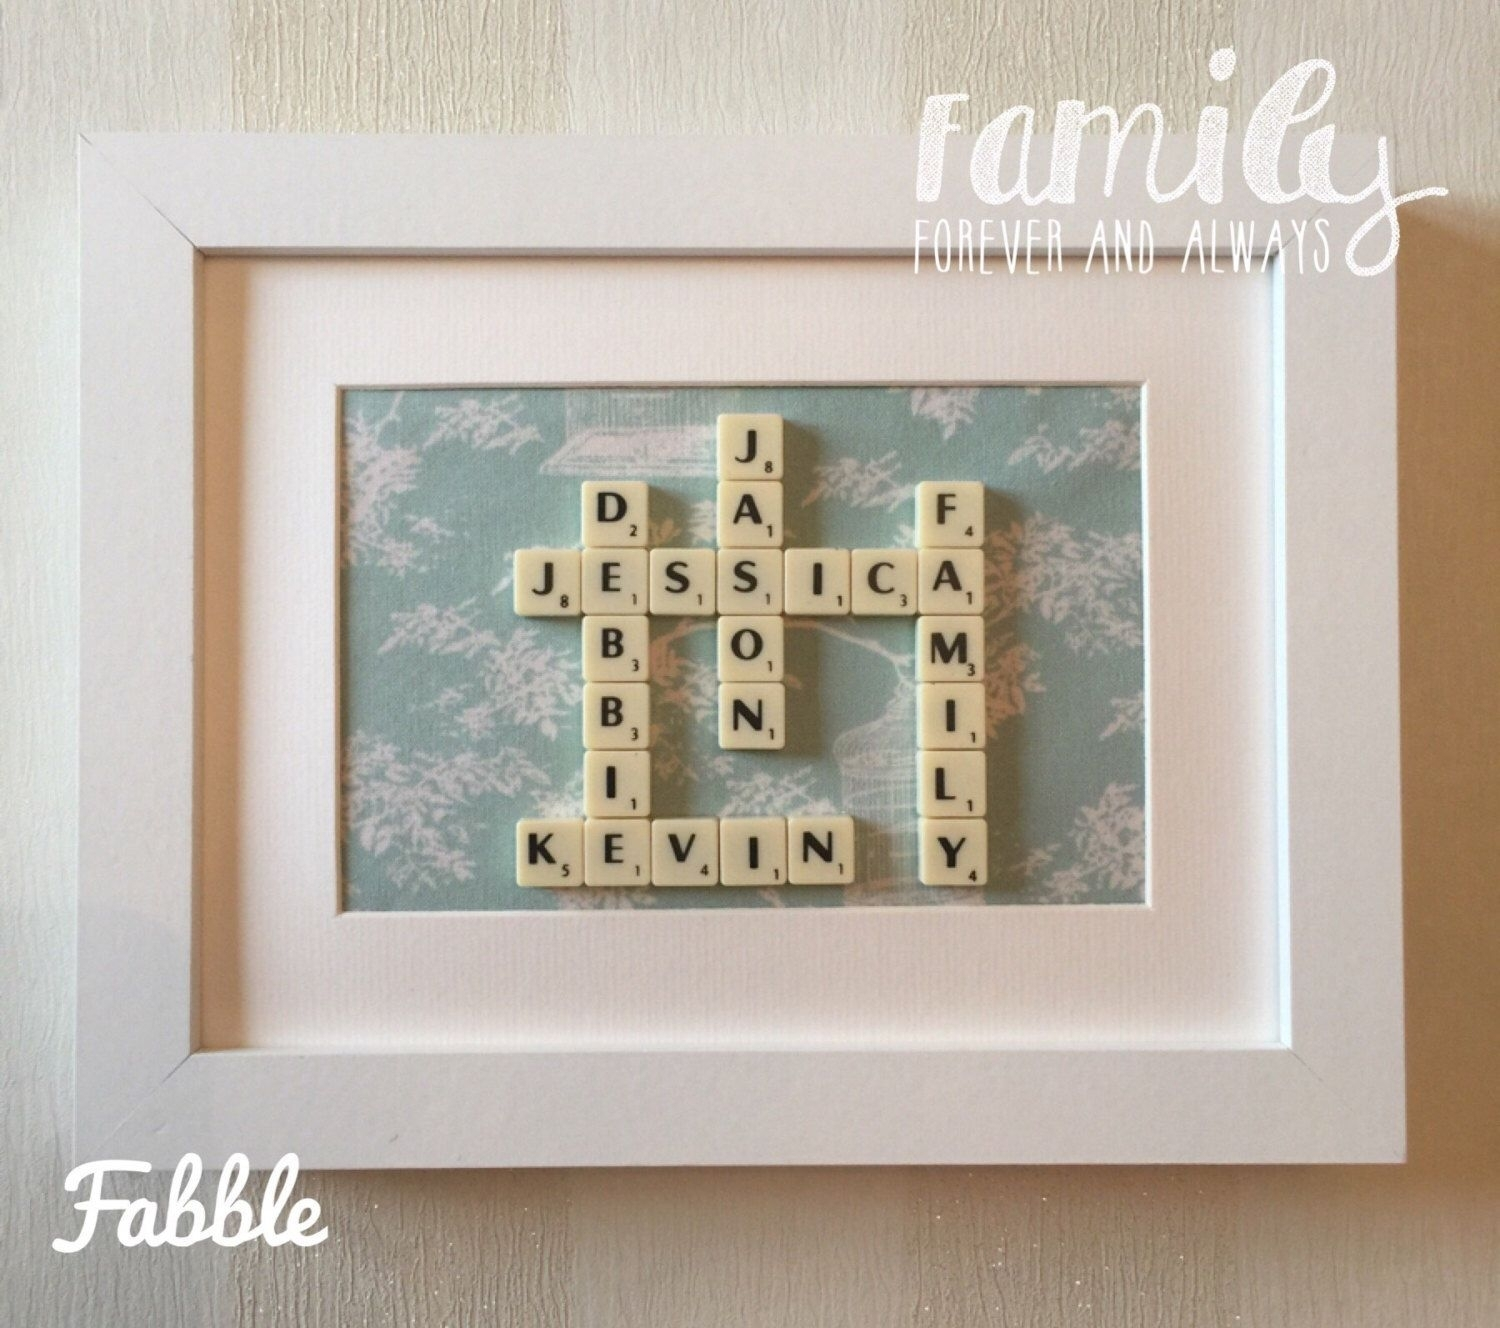 Scrabble Tile Wall Decor – Scrabble Tile Wall Decor Gift For Most Popular Fabric Square Wall Art (Gallery 9 of 15)